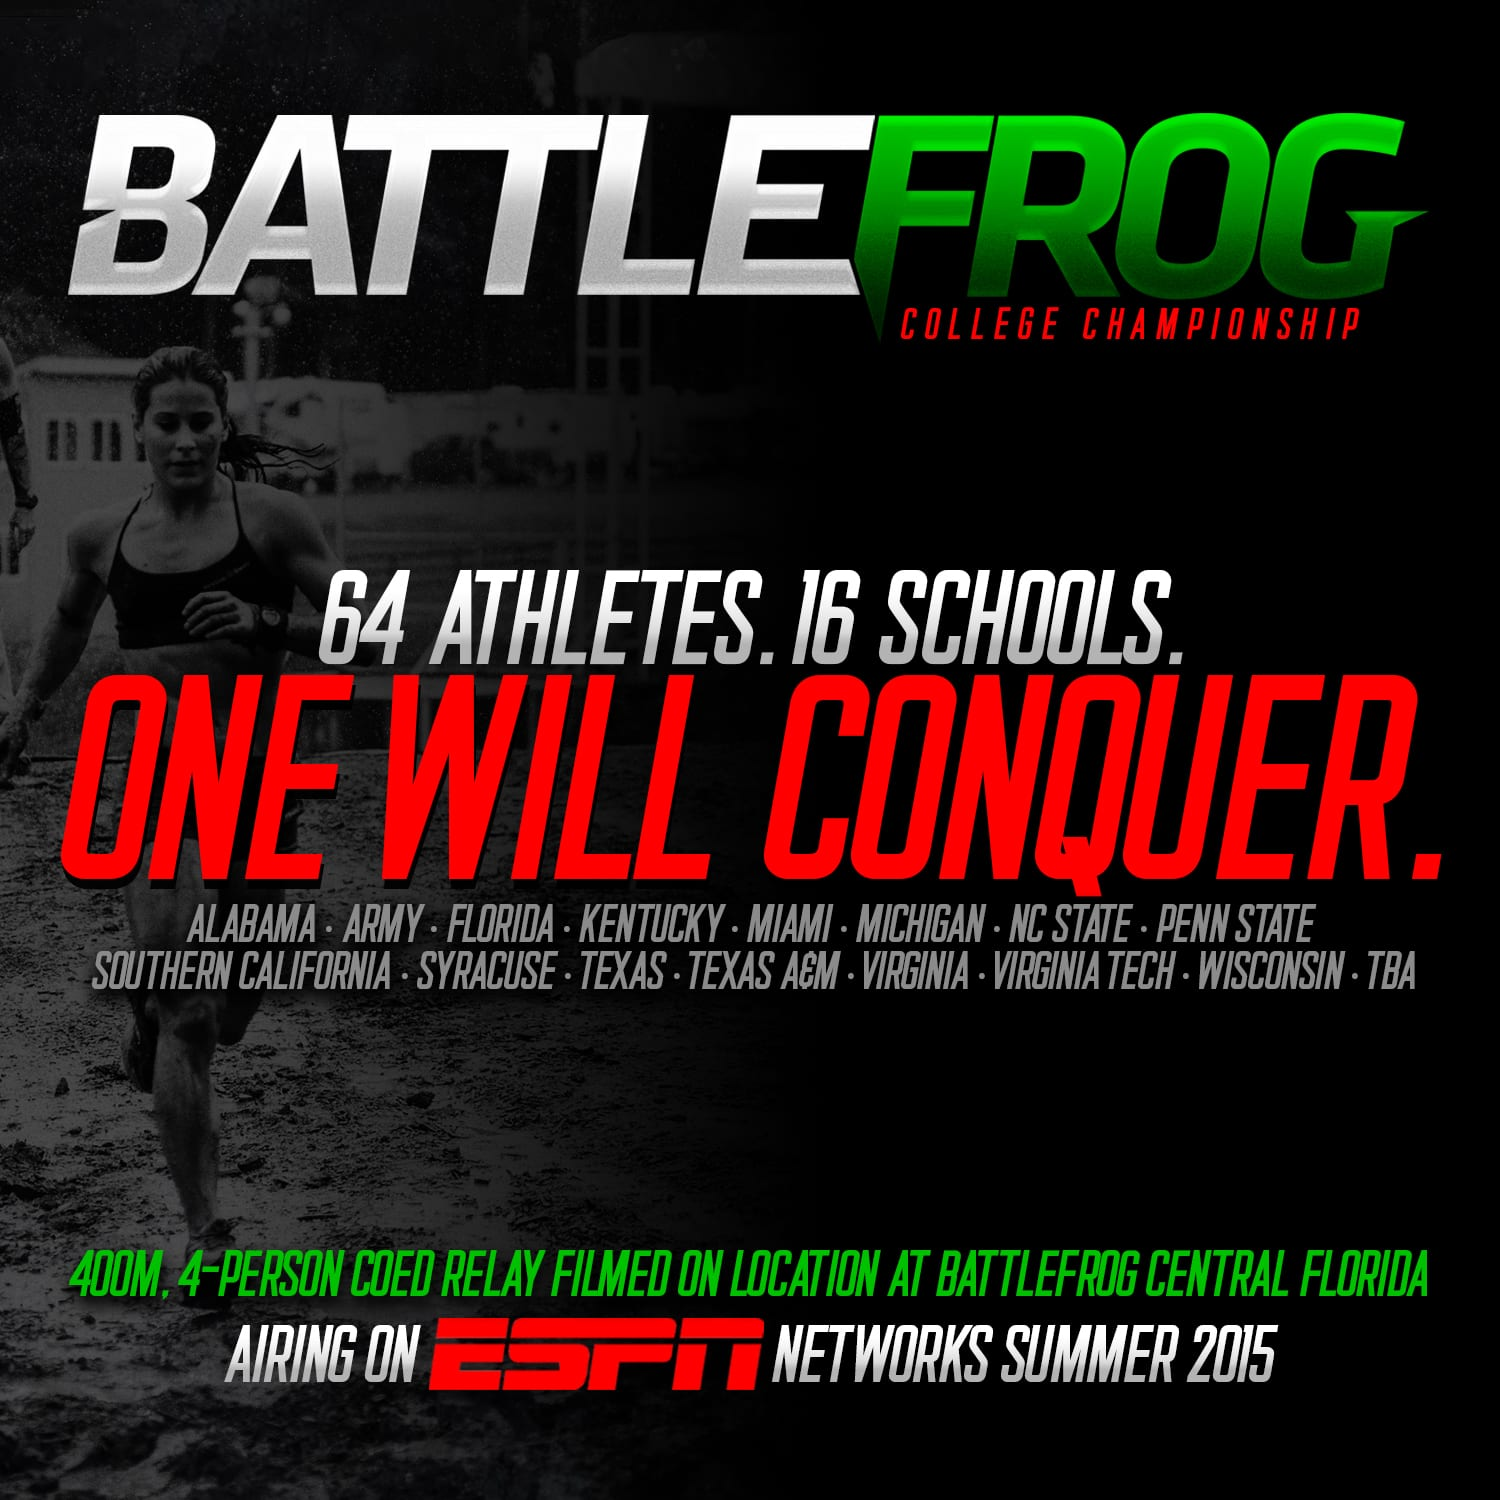 Battlefrog Announces A Partnership With Espn Mud Run